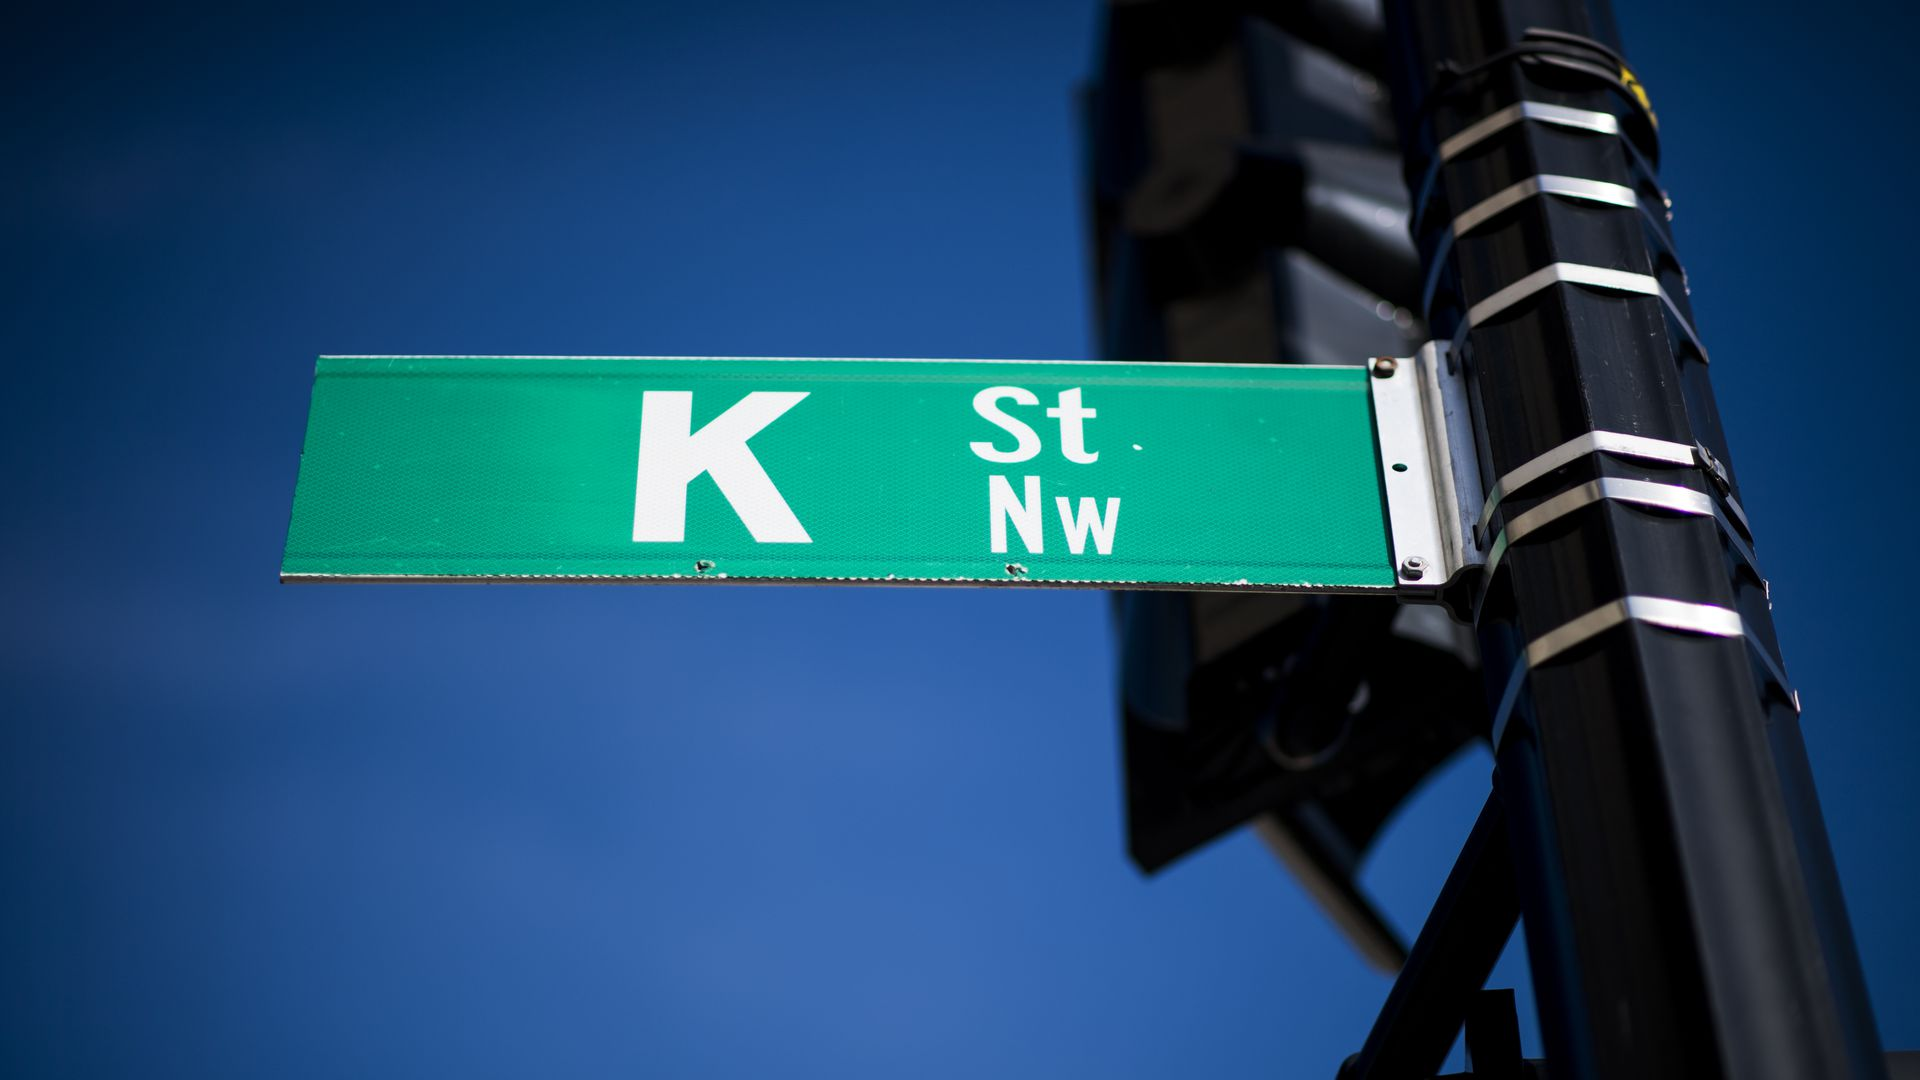 K Street sign in Washington, D.C.